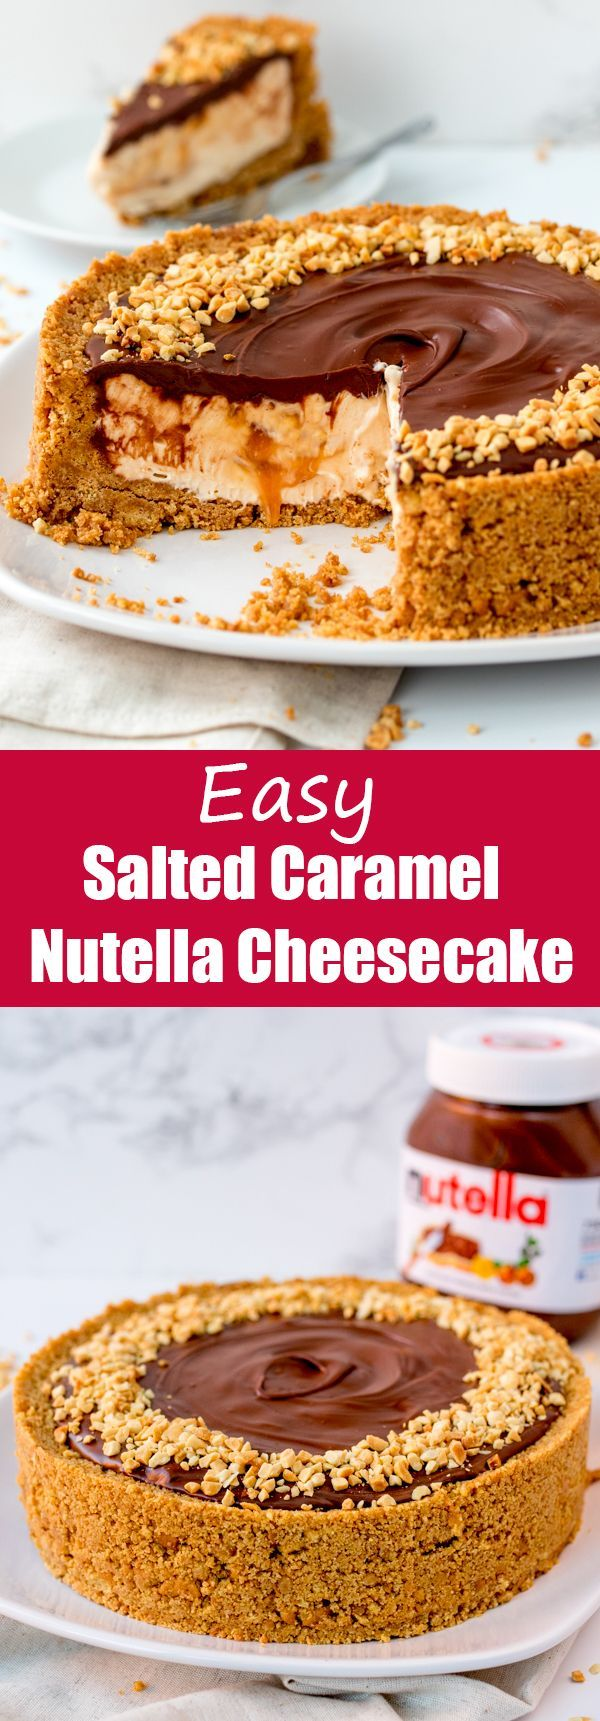 EASY NUTELLA SALTED CARAMEL CHEESECAKE - A simple no-bake cheesecake that will impress everyone!